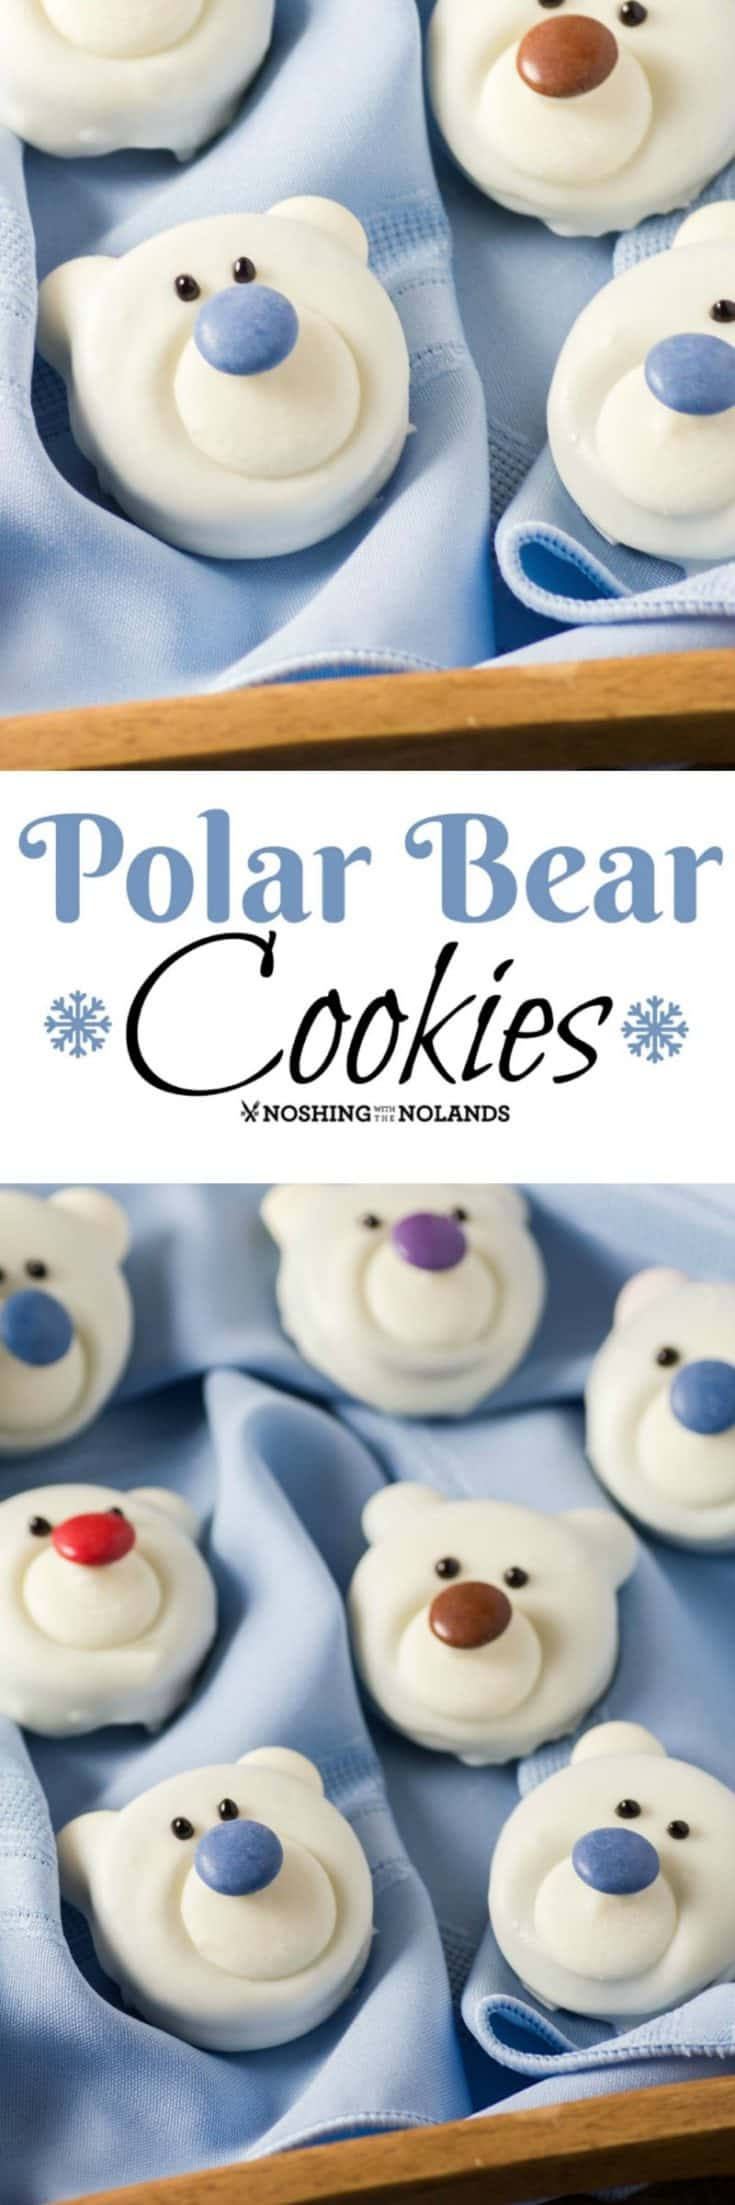 Polar Bear Cookies are fun to make and a great edible craft for the family! #polarbears #ediblecraft #cookies